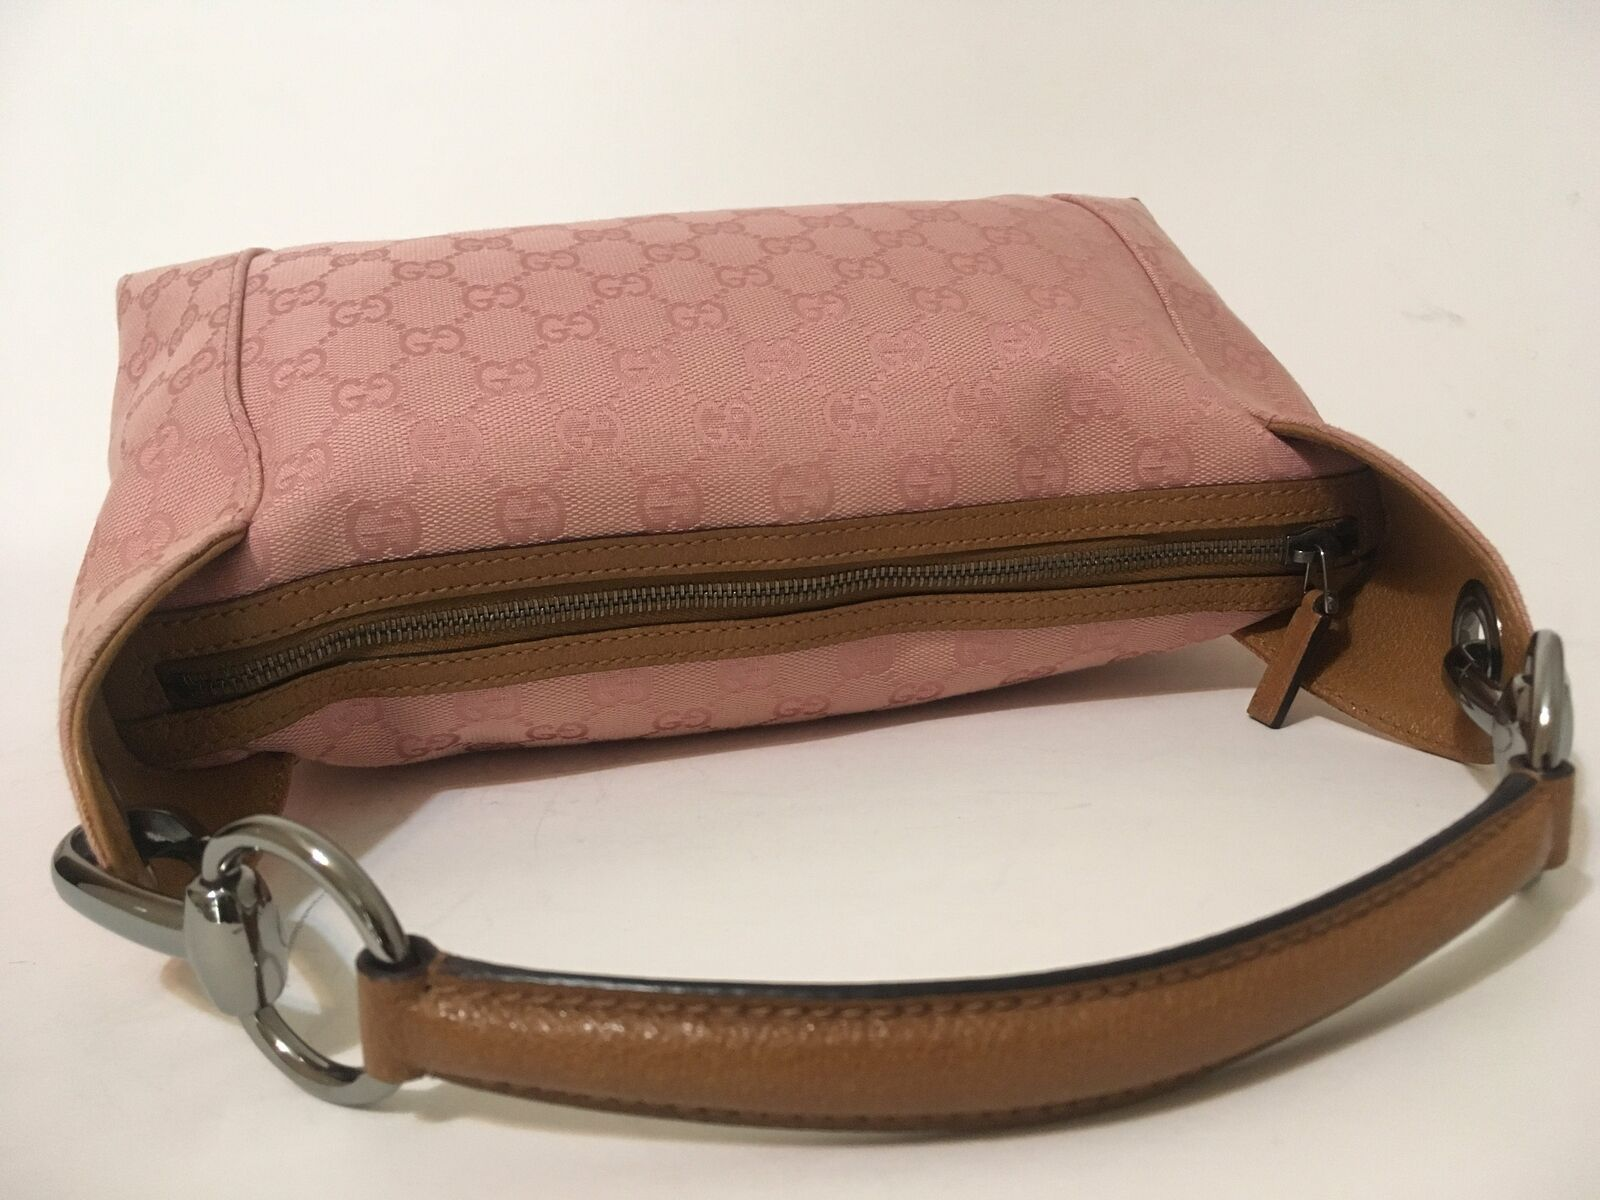 Gucci Monogram Canvas Shoulder Bag Pink